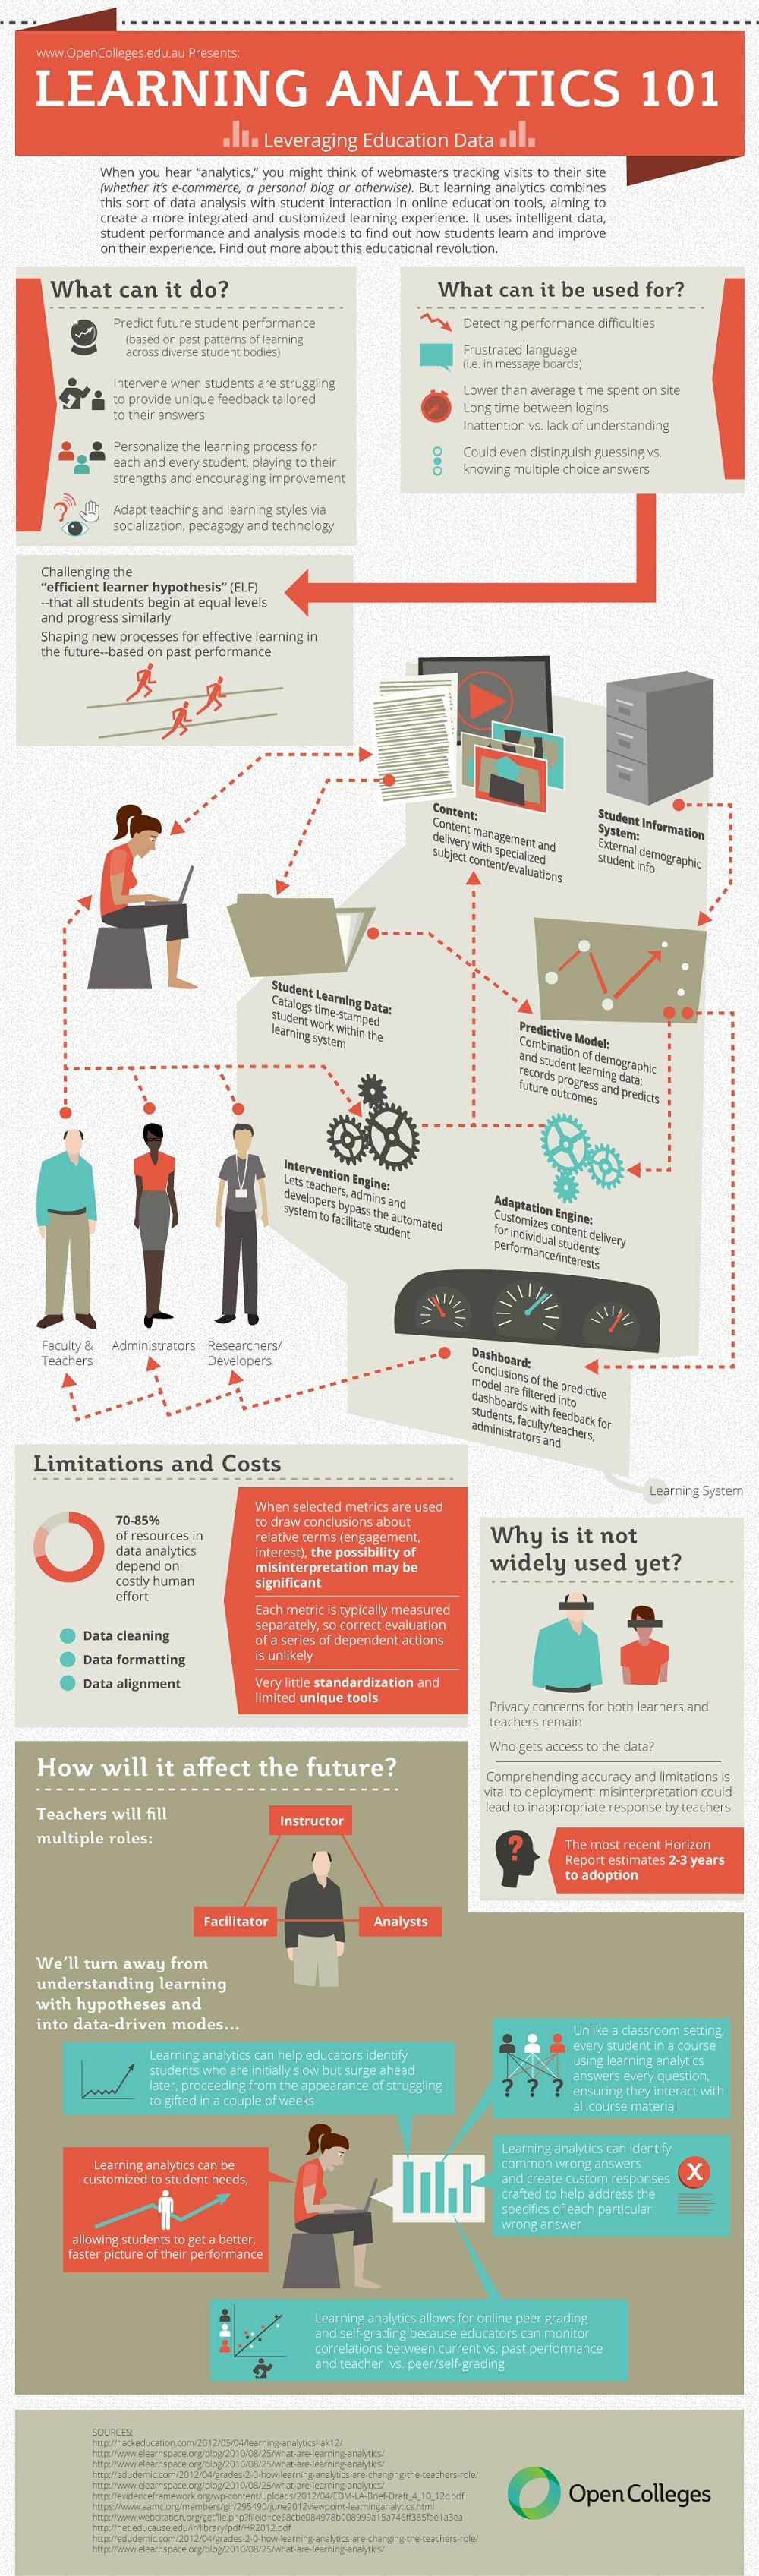 Learning Analytics Infographic